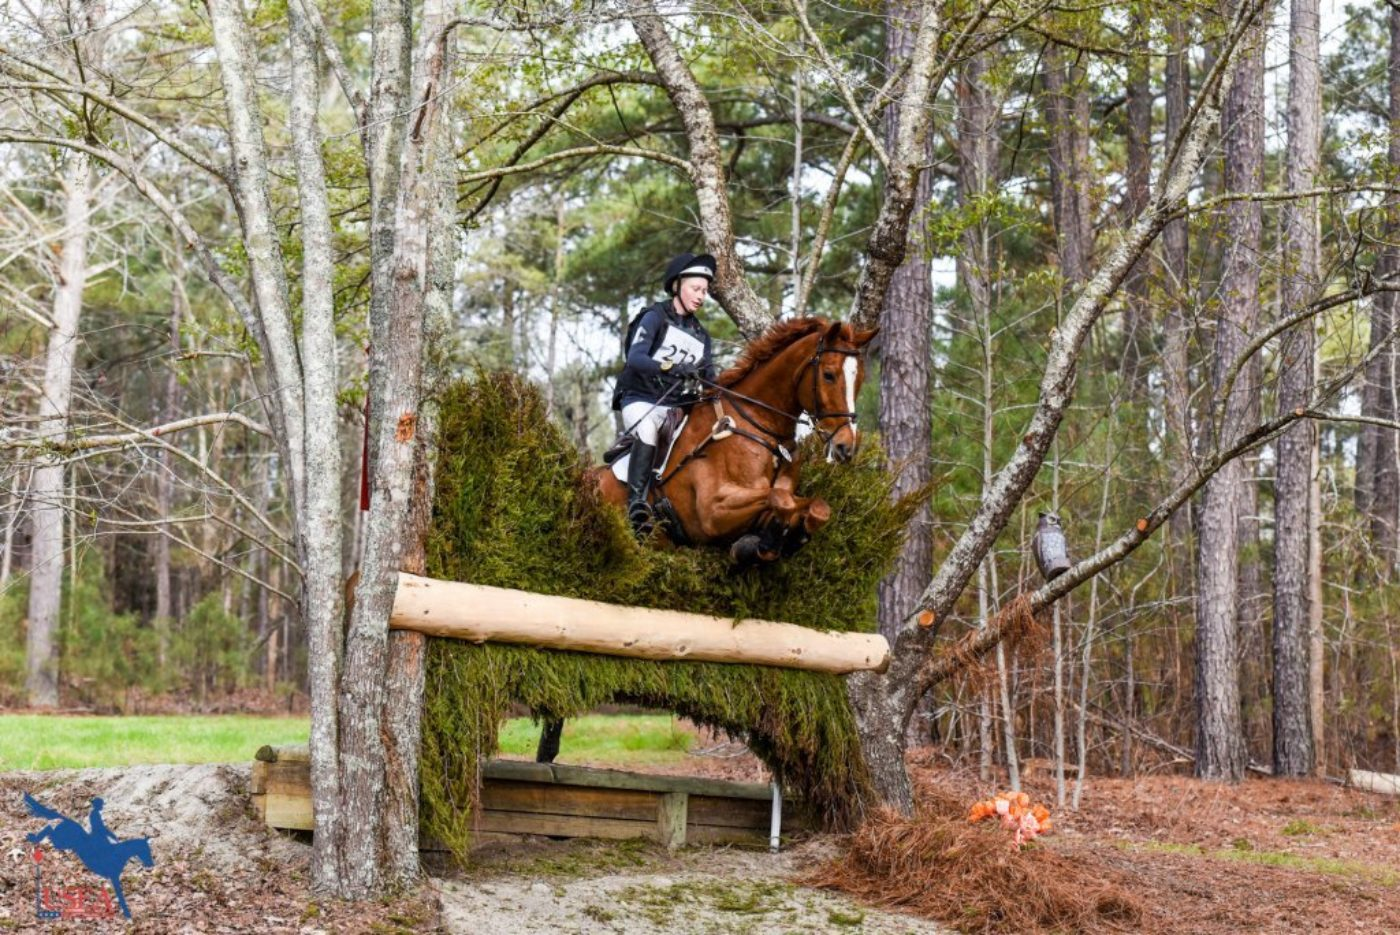 Ian Stark definitely made use of the trees as he planned the cross-country courses. USEA/Leslie Mintz Photo.